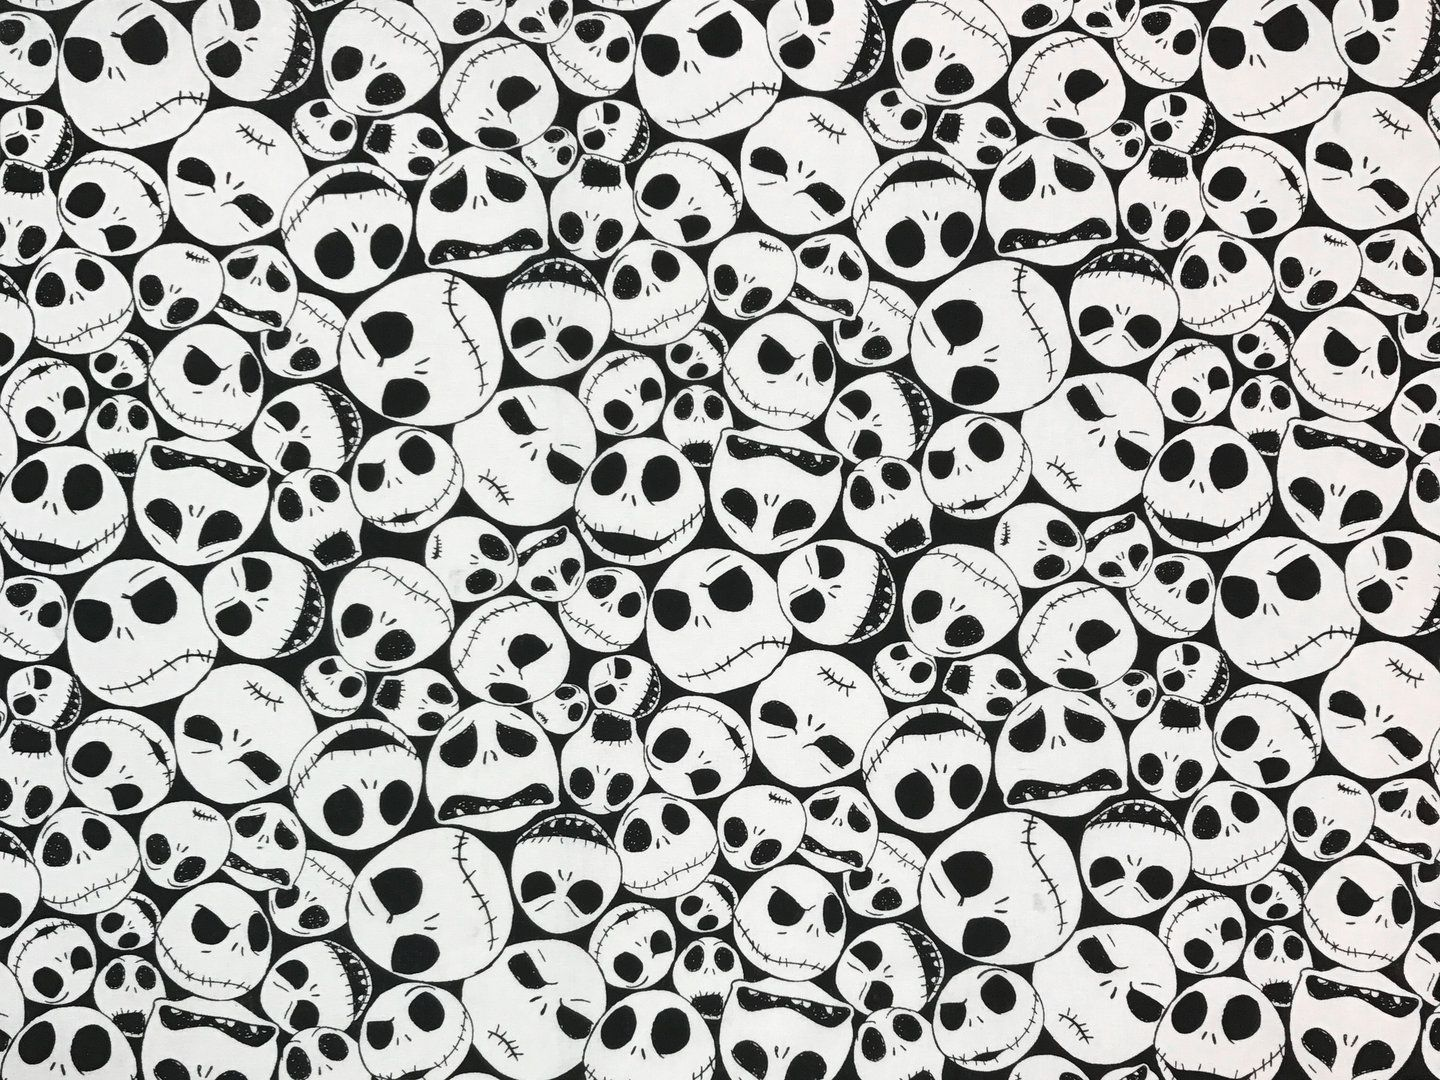 Nightmare Before Christmas Black White D60   Textile Express   Fabric